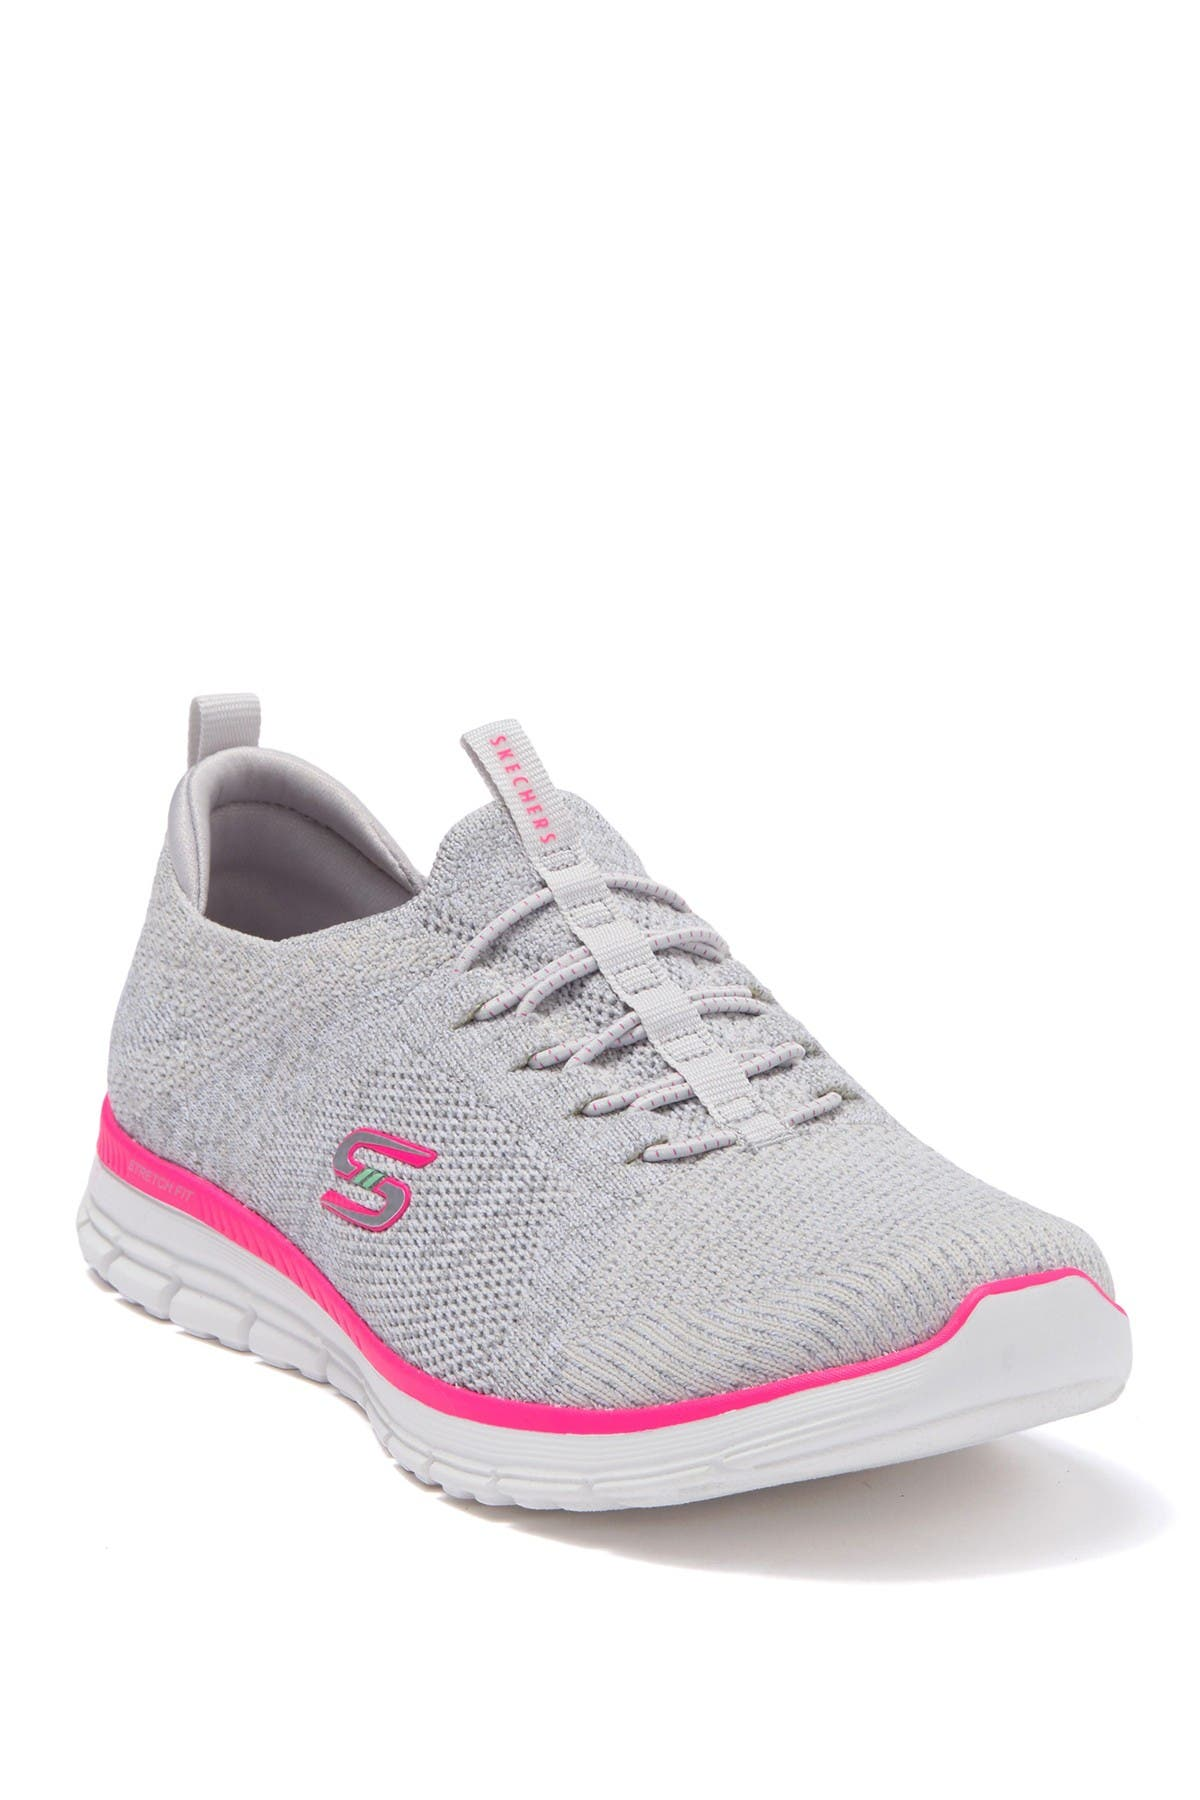 Image of Skechers Luminate - She's Magnificent Sneaker